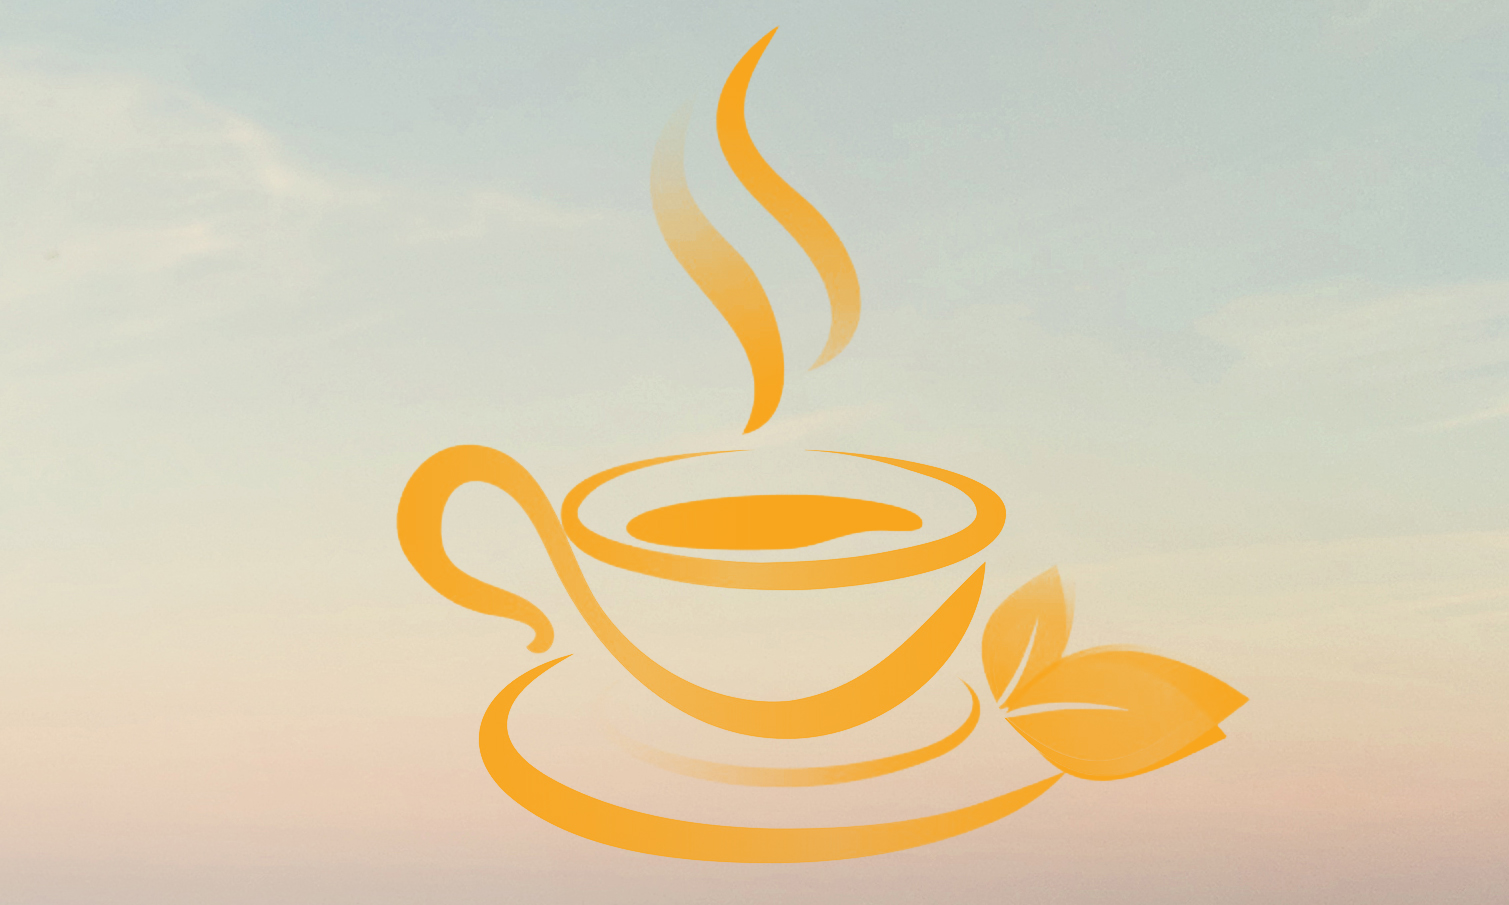 Coffee, Juice, Tea, Conversation and Community